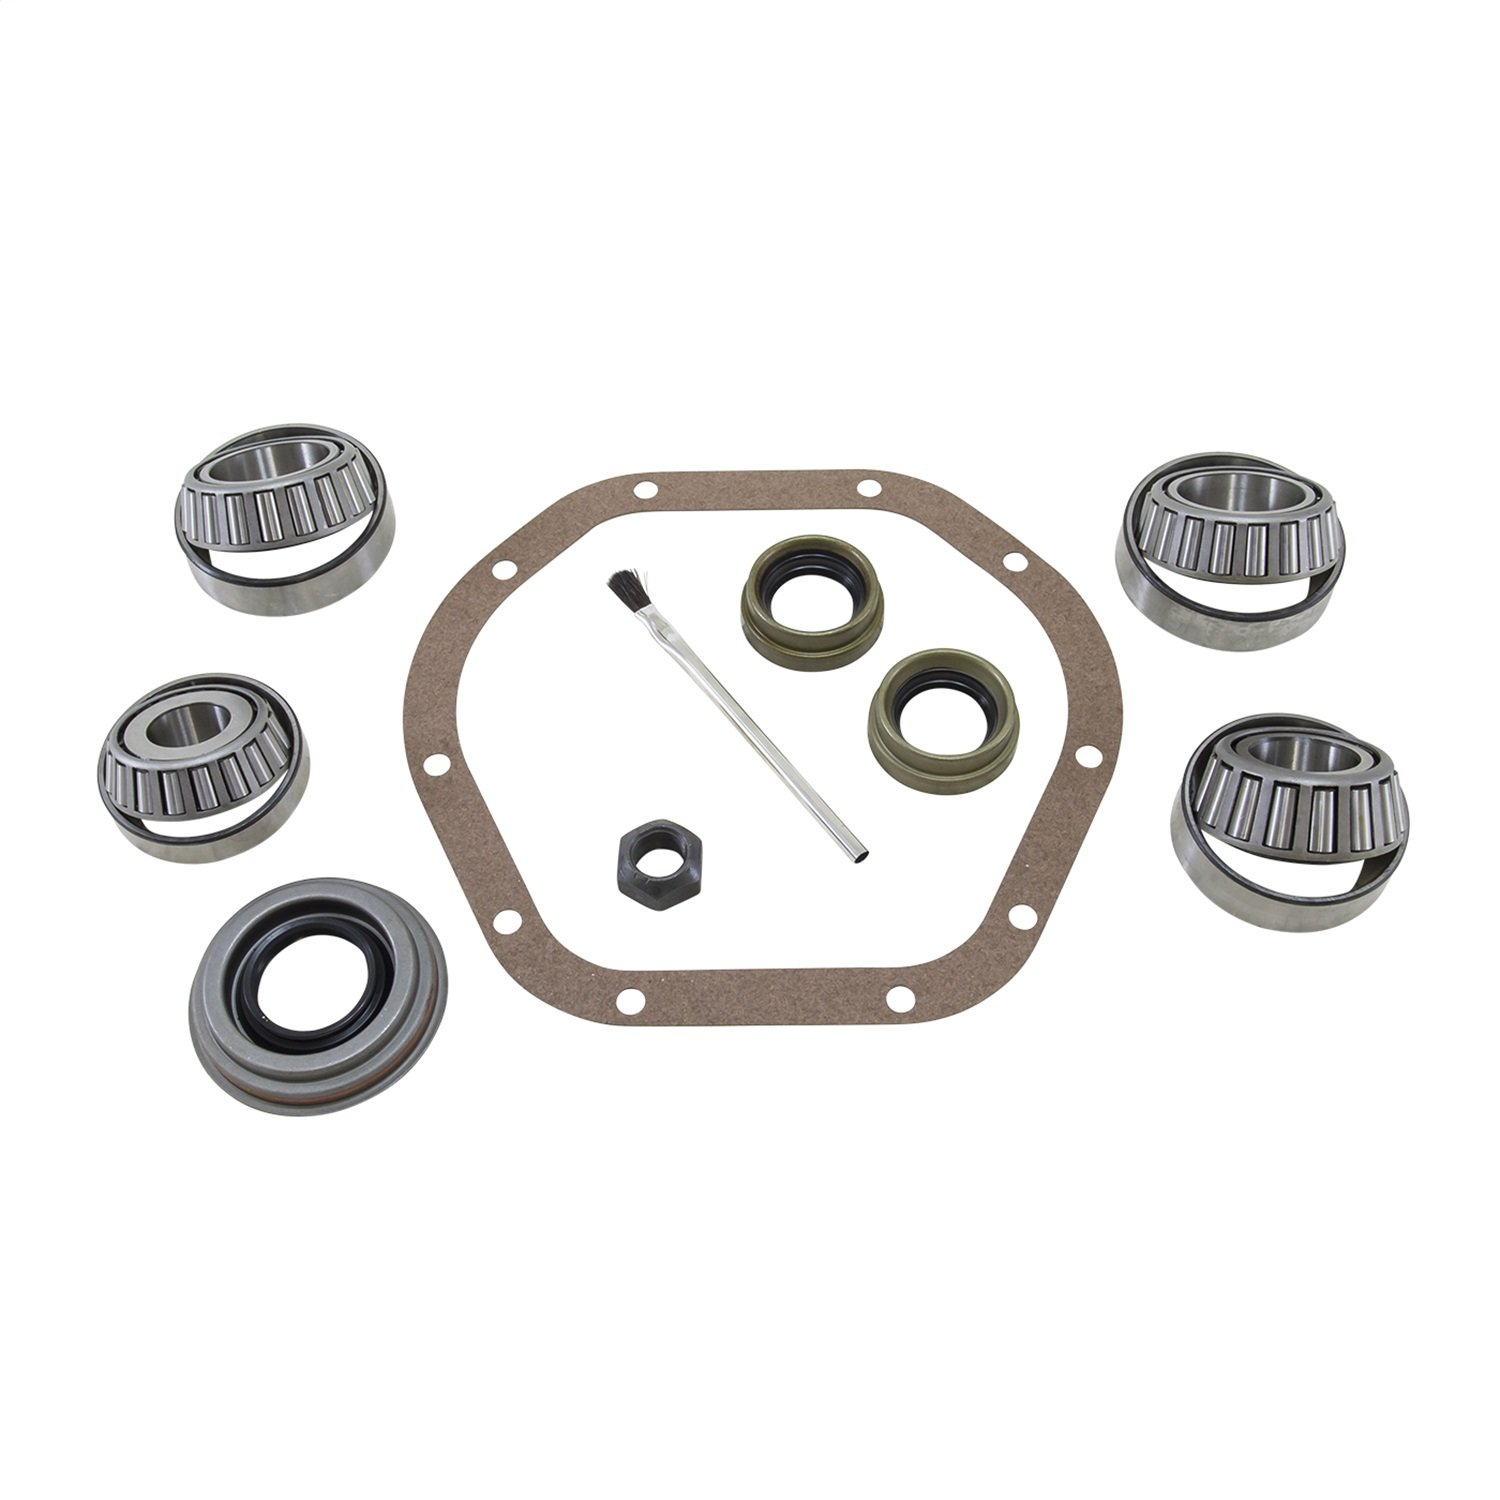 Yukon (BK D44-RUBICON) Bearing Installation Kit for Jeep TJ Dana 44 Rubicon Differential by Yukon Gear (Image #1)